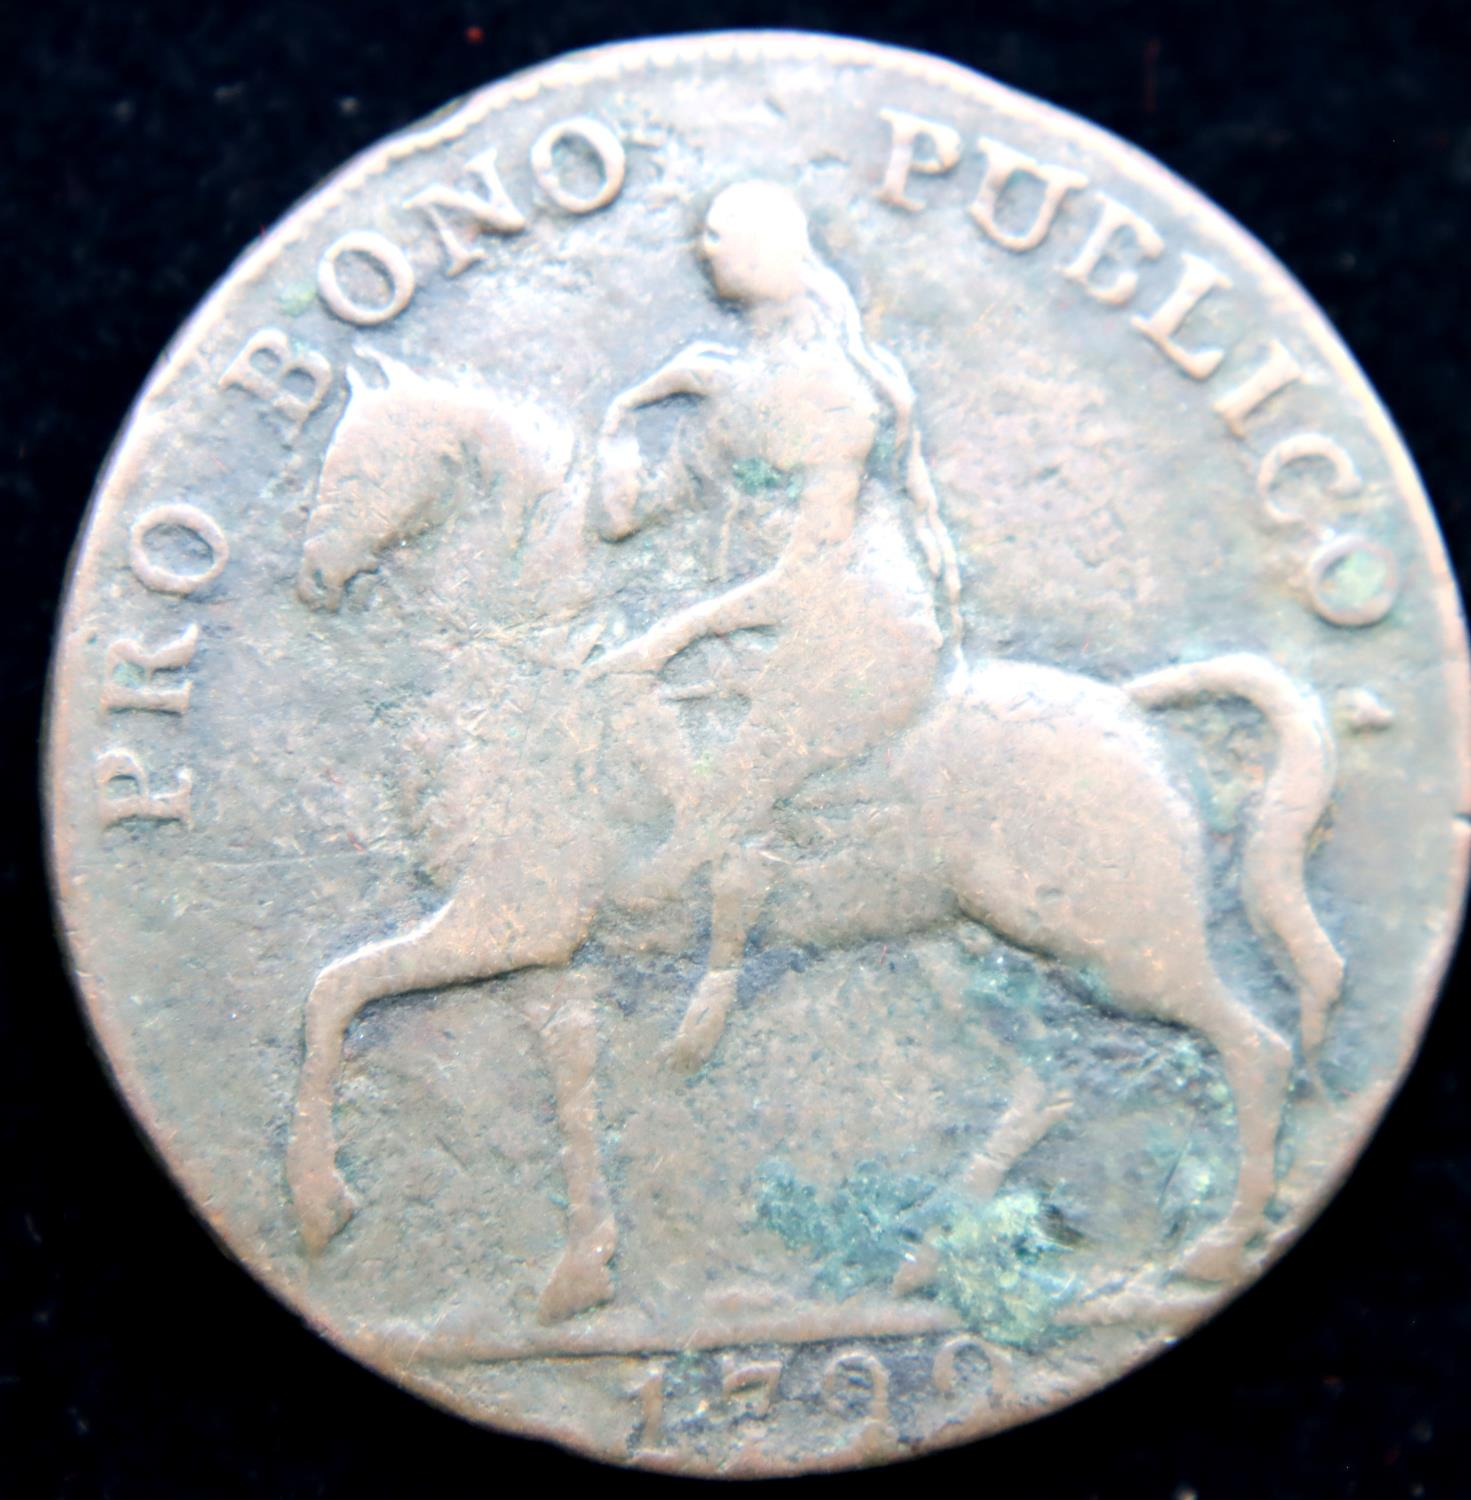 1799 - Copper Half Penny for Coventry - Castle/Elephant. P&P Group 1 (£14+VAT for the first lot